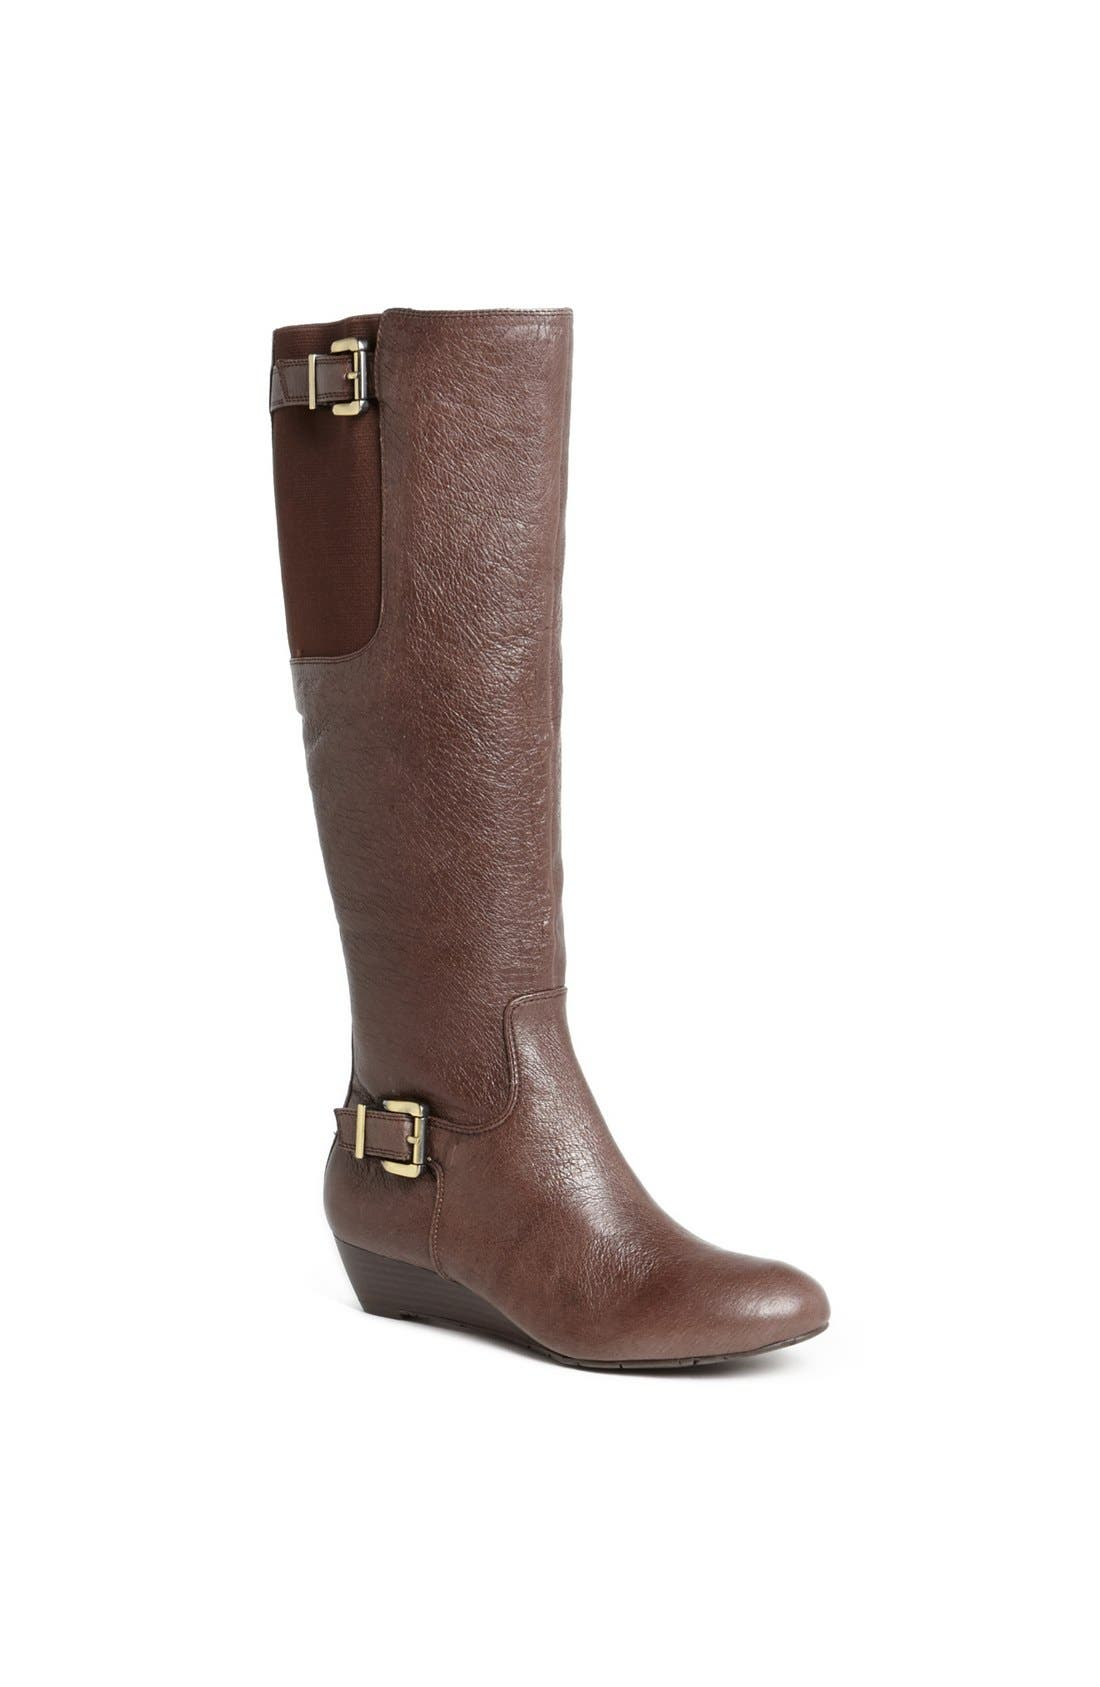 Alternate Image 1 Selected - Jessica Simpson 'Beeson' Wedge Boot